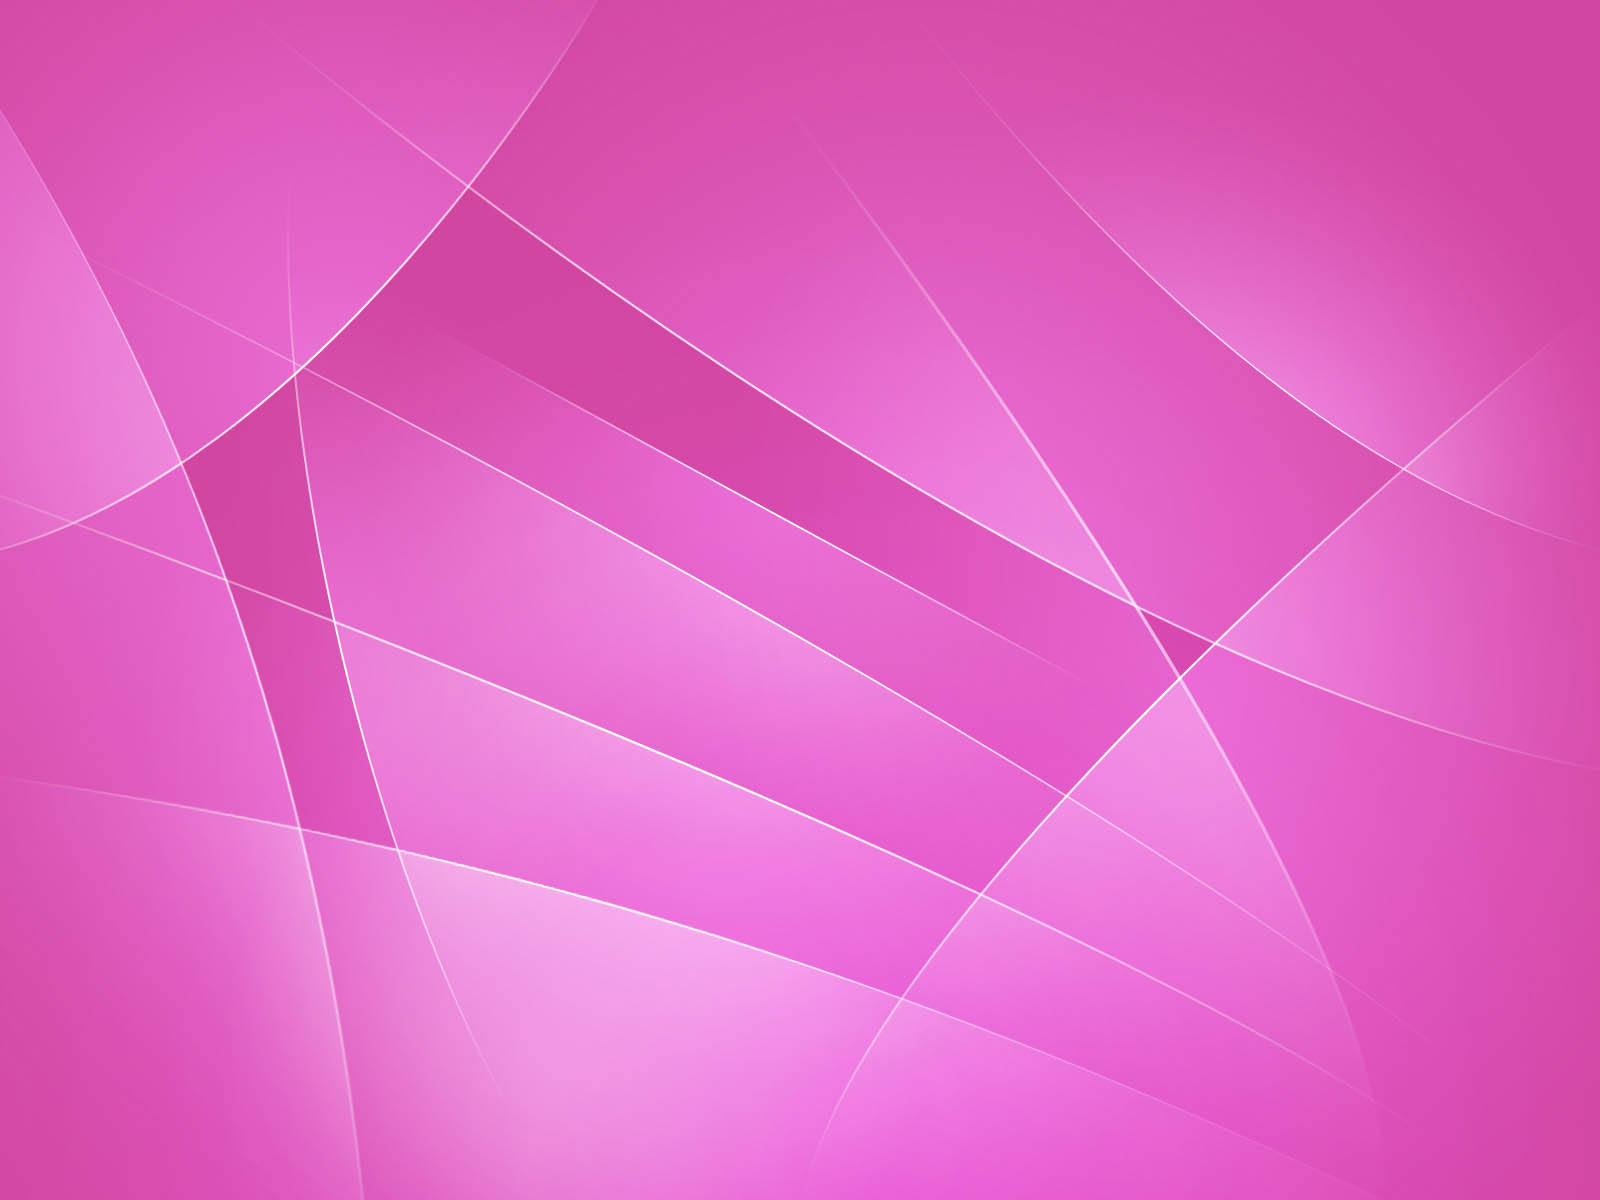 wallpapers: Abstract Pink Wallpapers